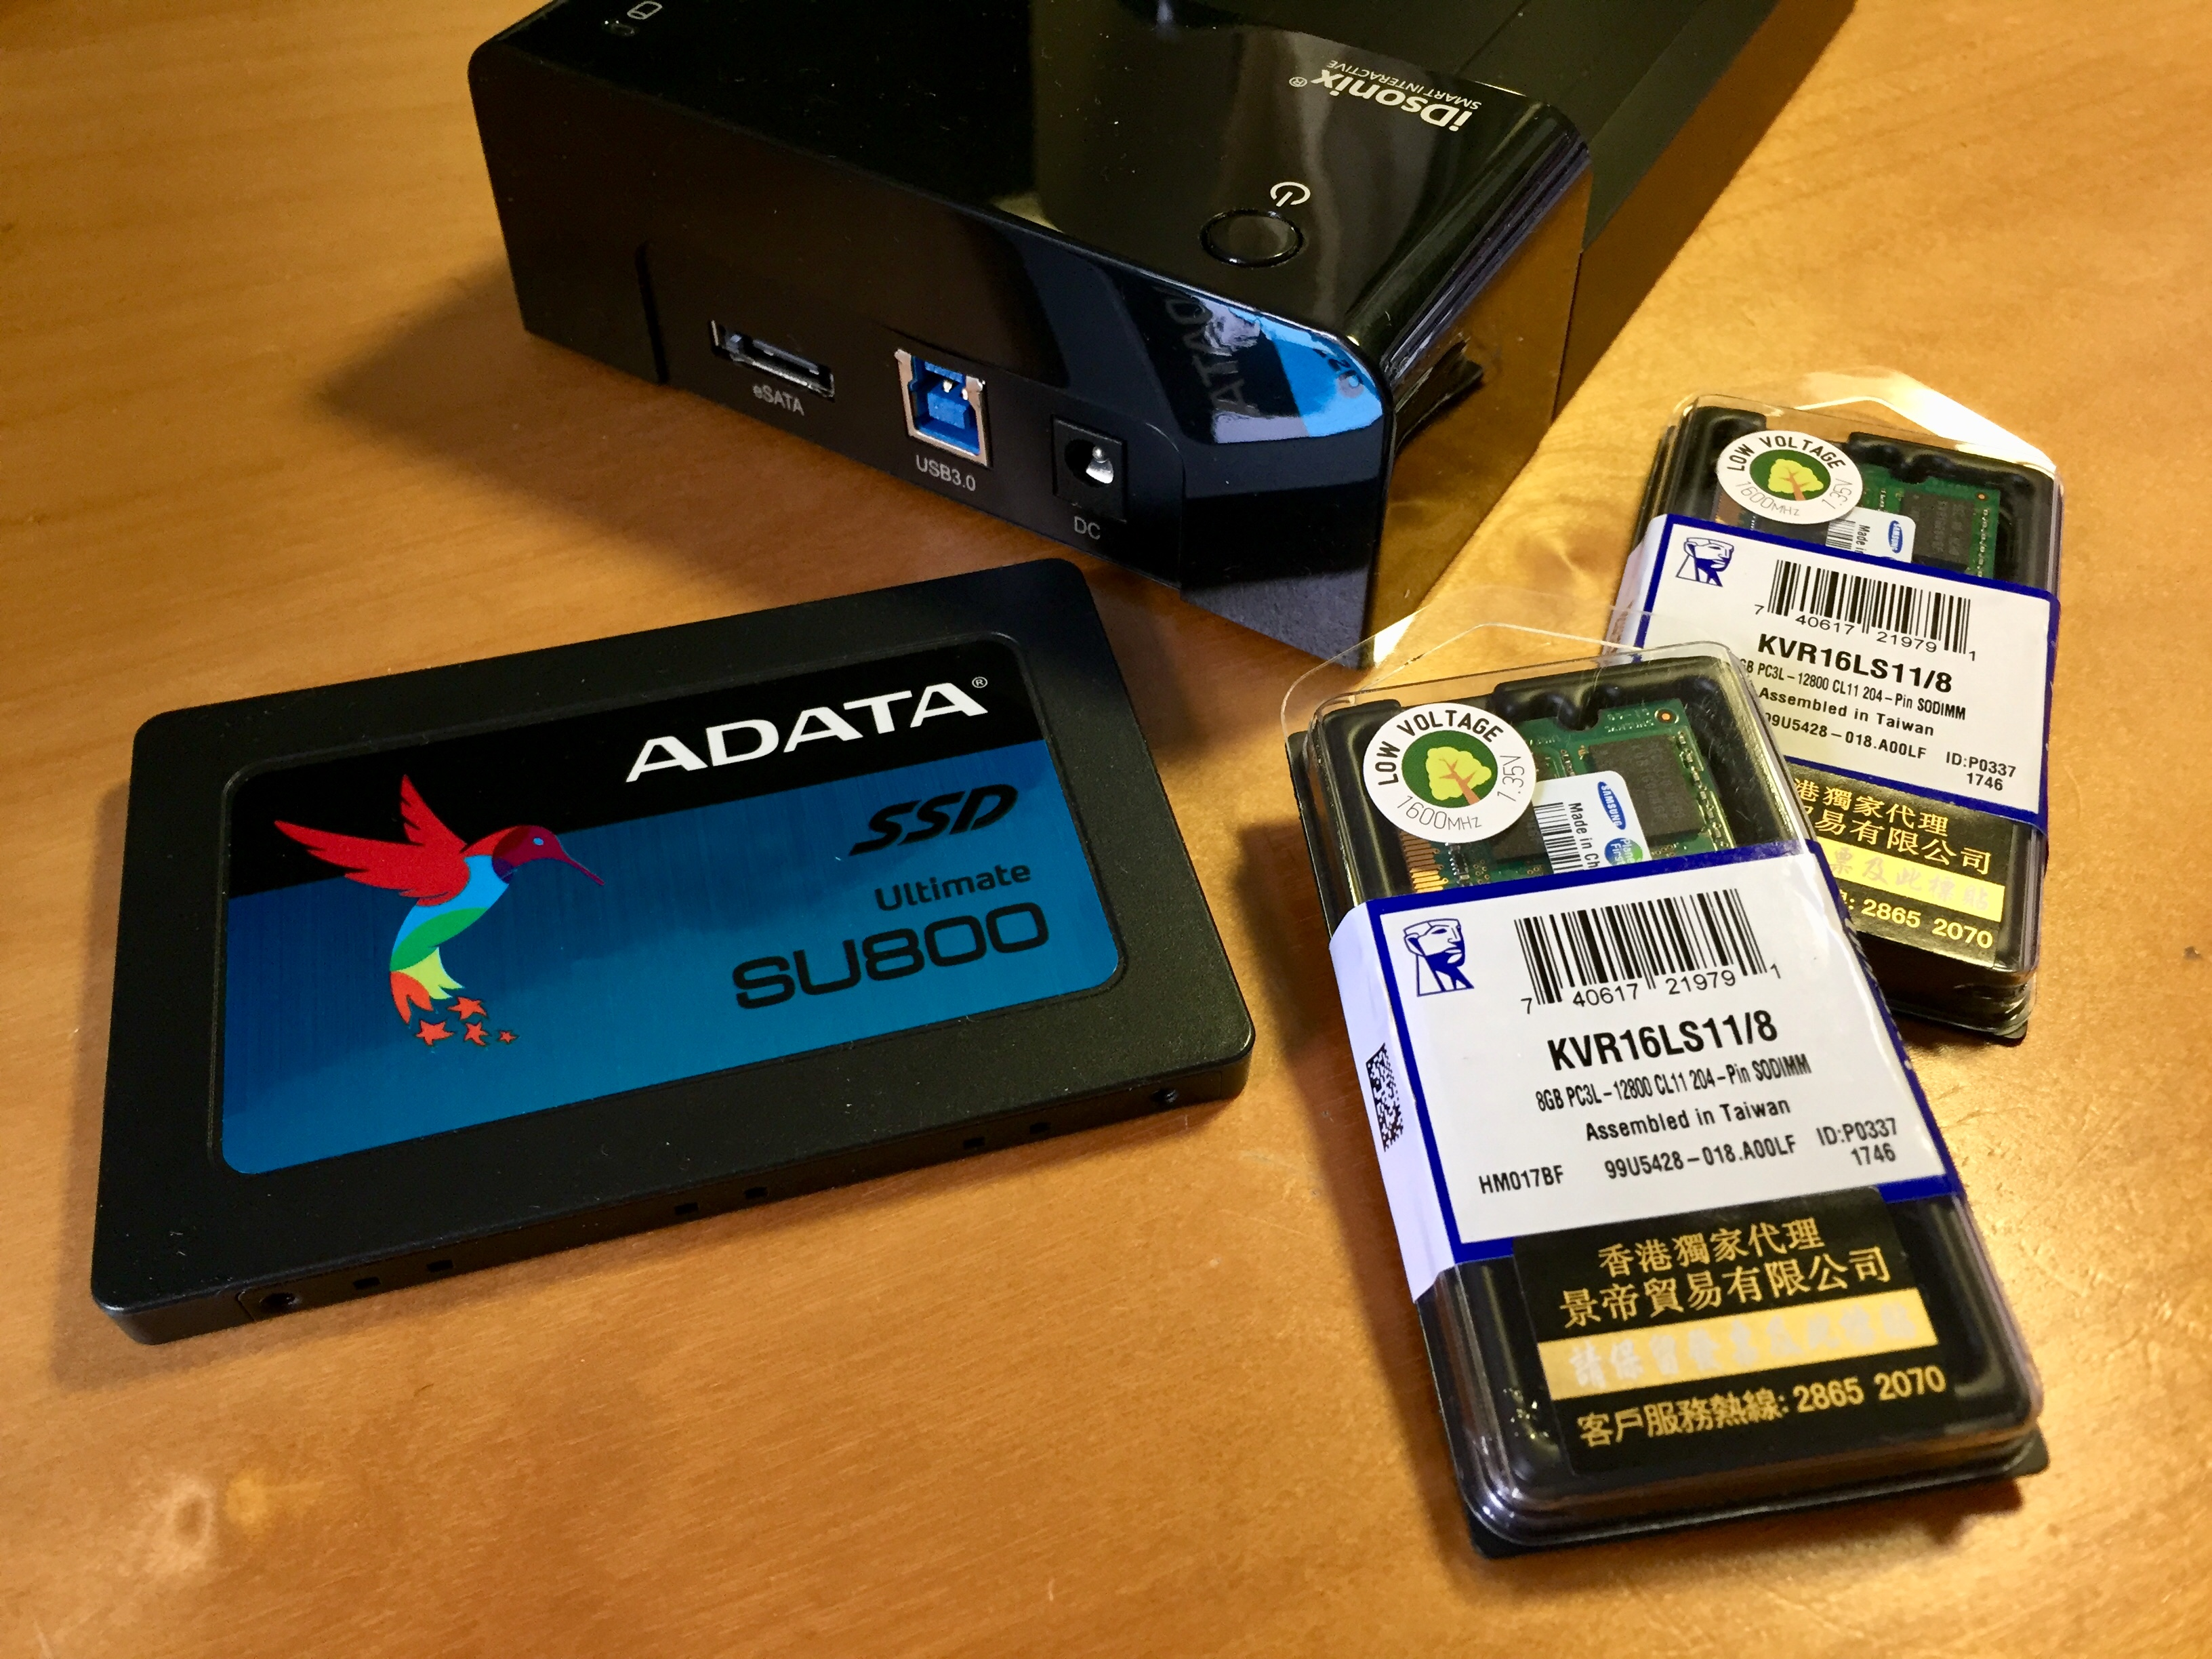 ADATA 512GB SSD; IDsonix 外置儲存盒 eSATA External disk enclosure;Kingston 8GB DDR3 SODIMM